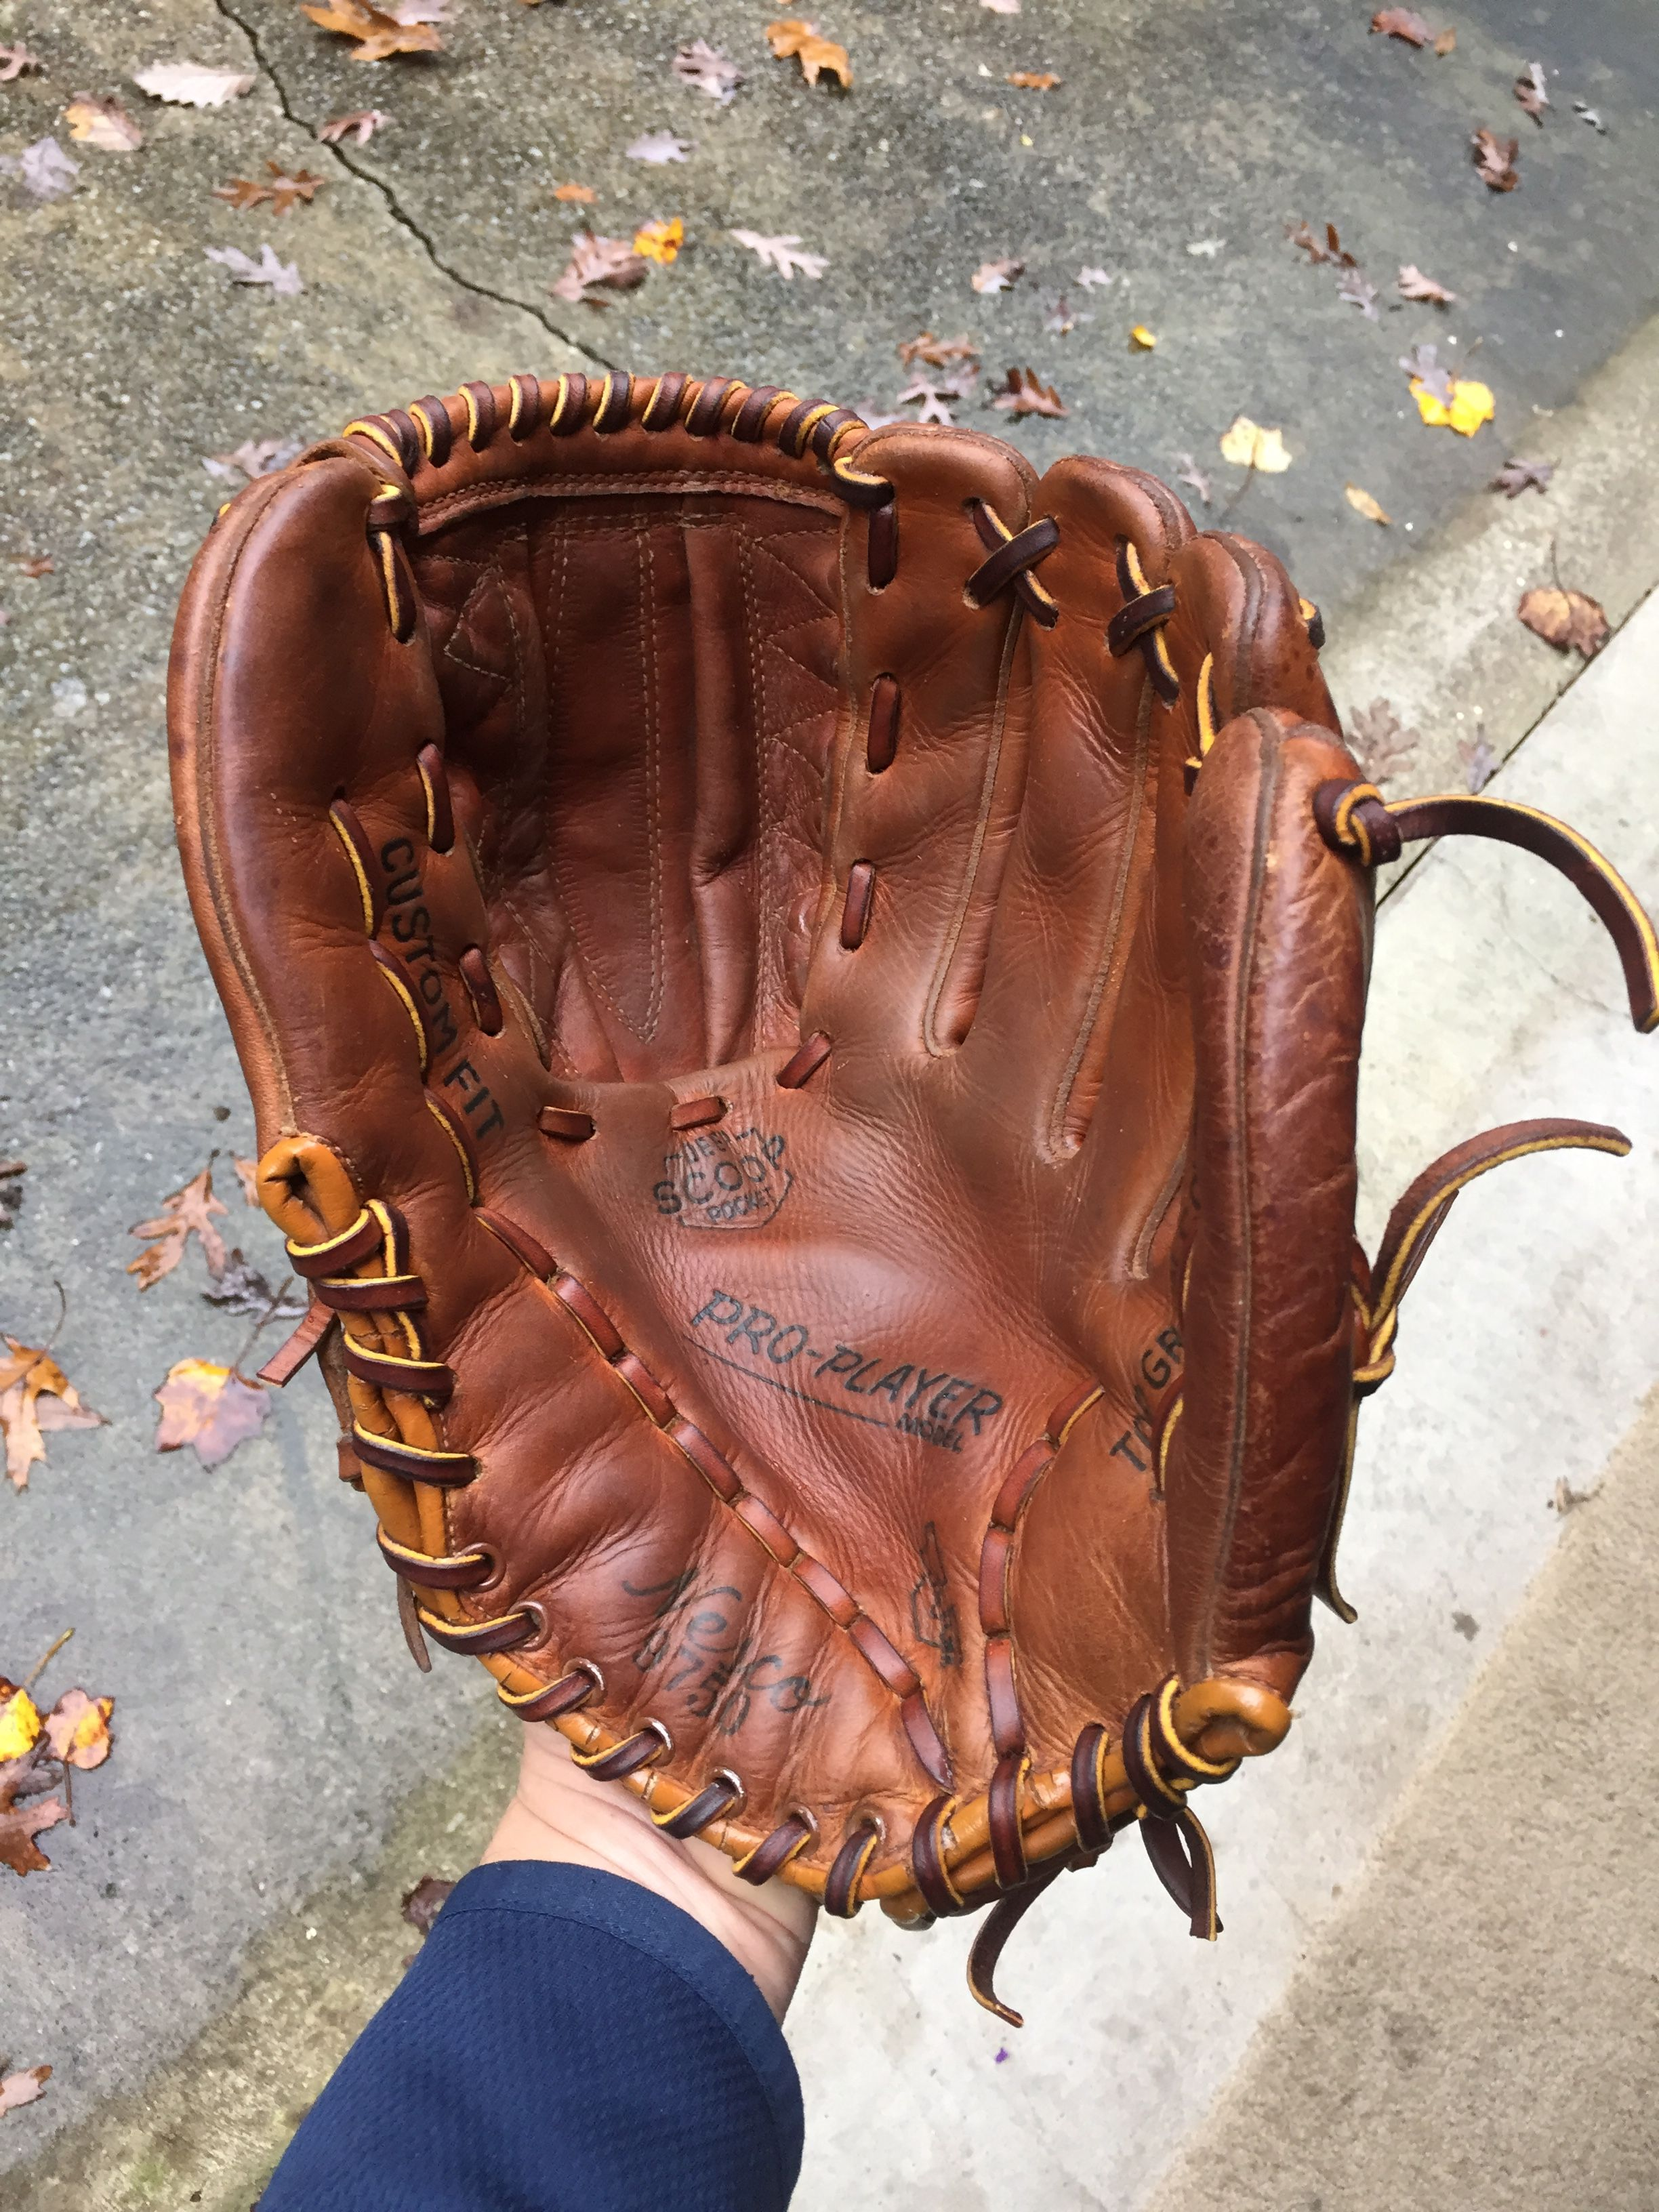 No Before Pics But I Found This Old Nesco Brand Glove At Goodwill It Was Flat Filthy And Completely Dried Out After Rela Baseball Glove Saddle Bags Bags